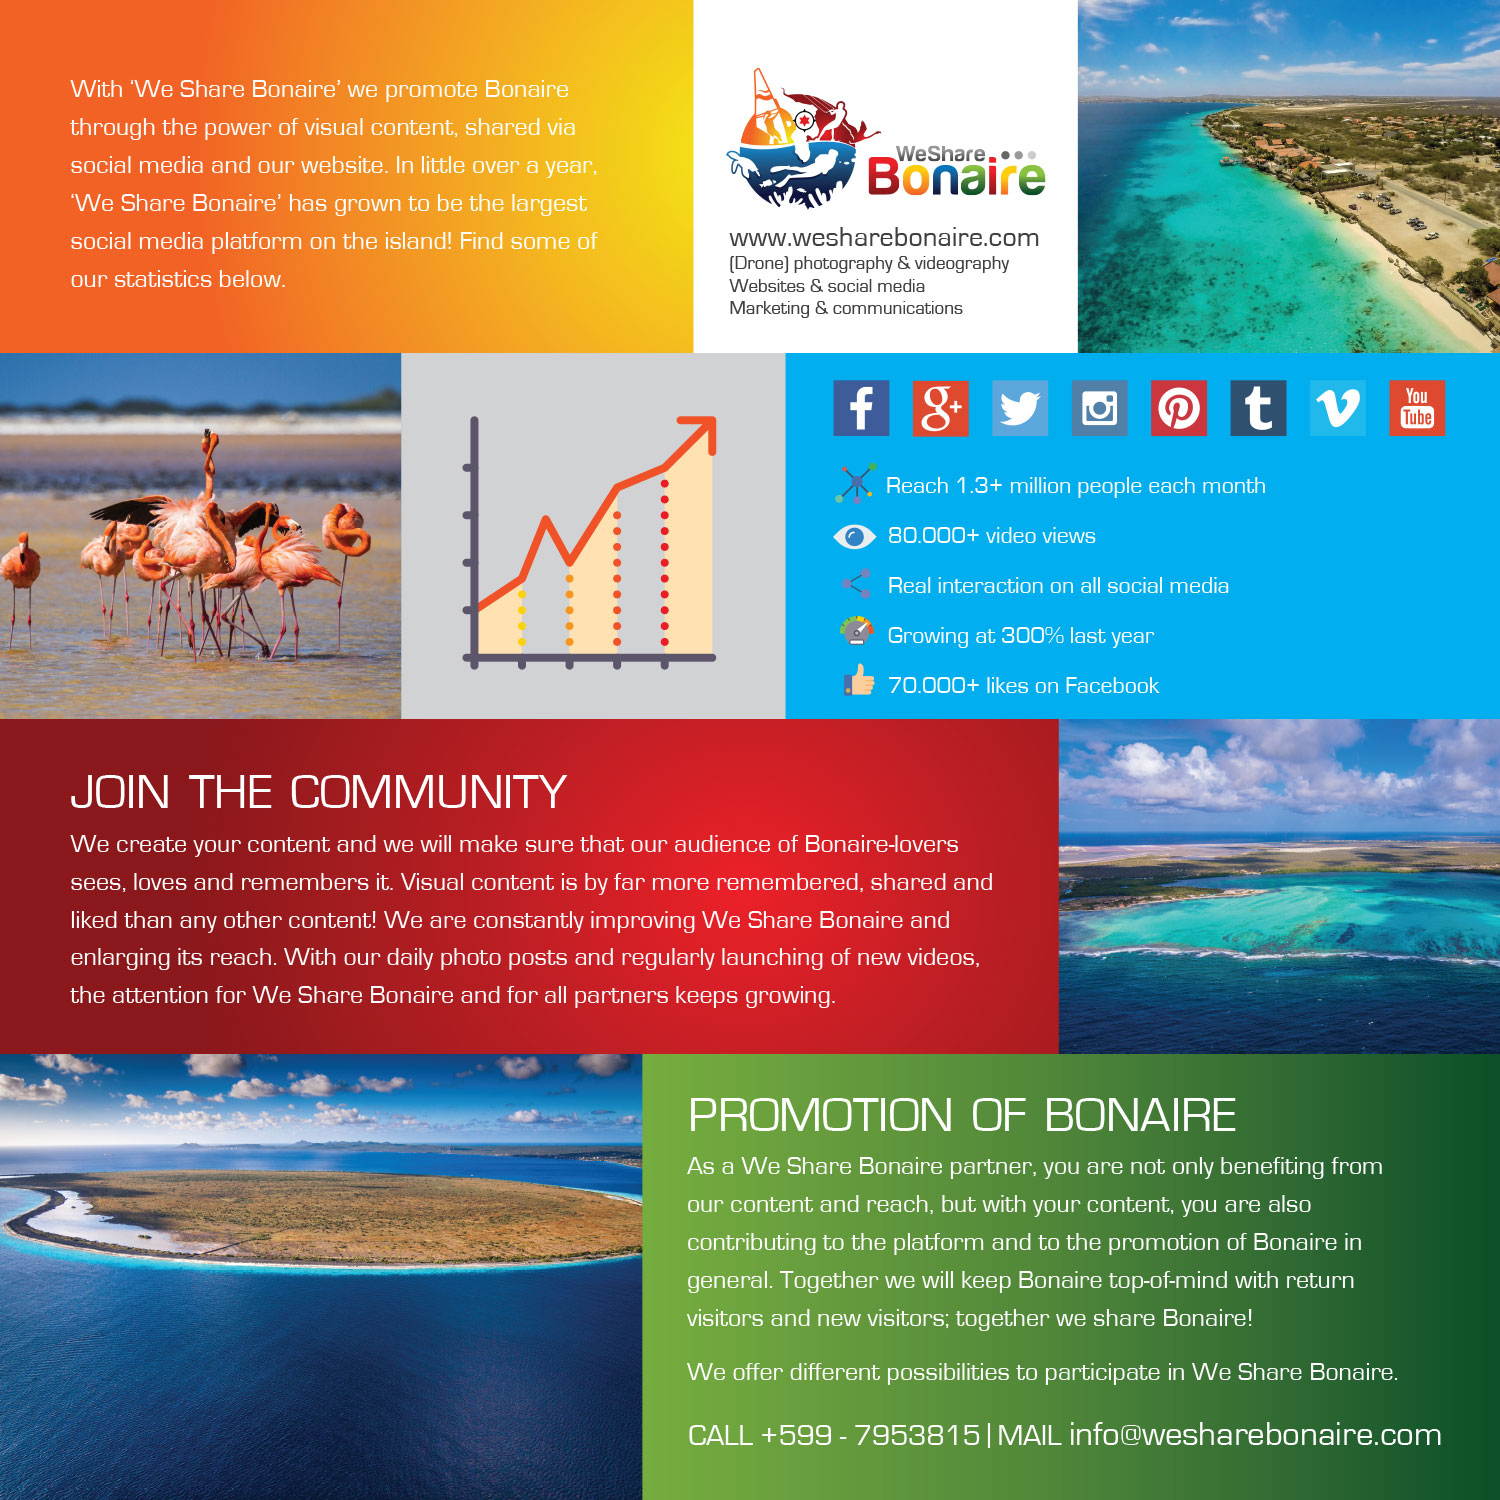 We Share Bonaire Information